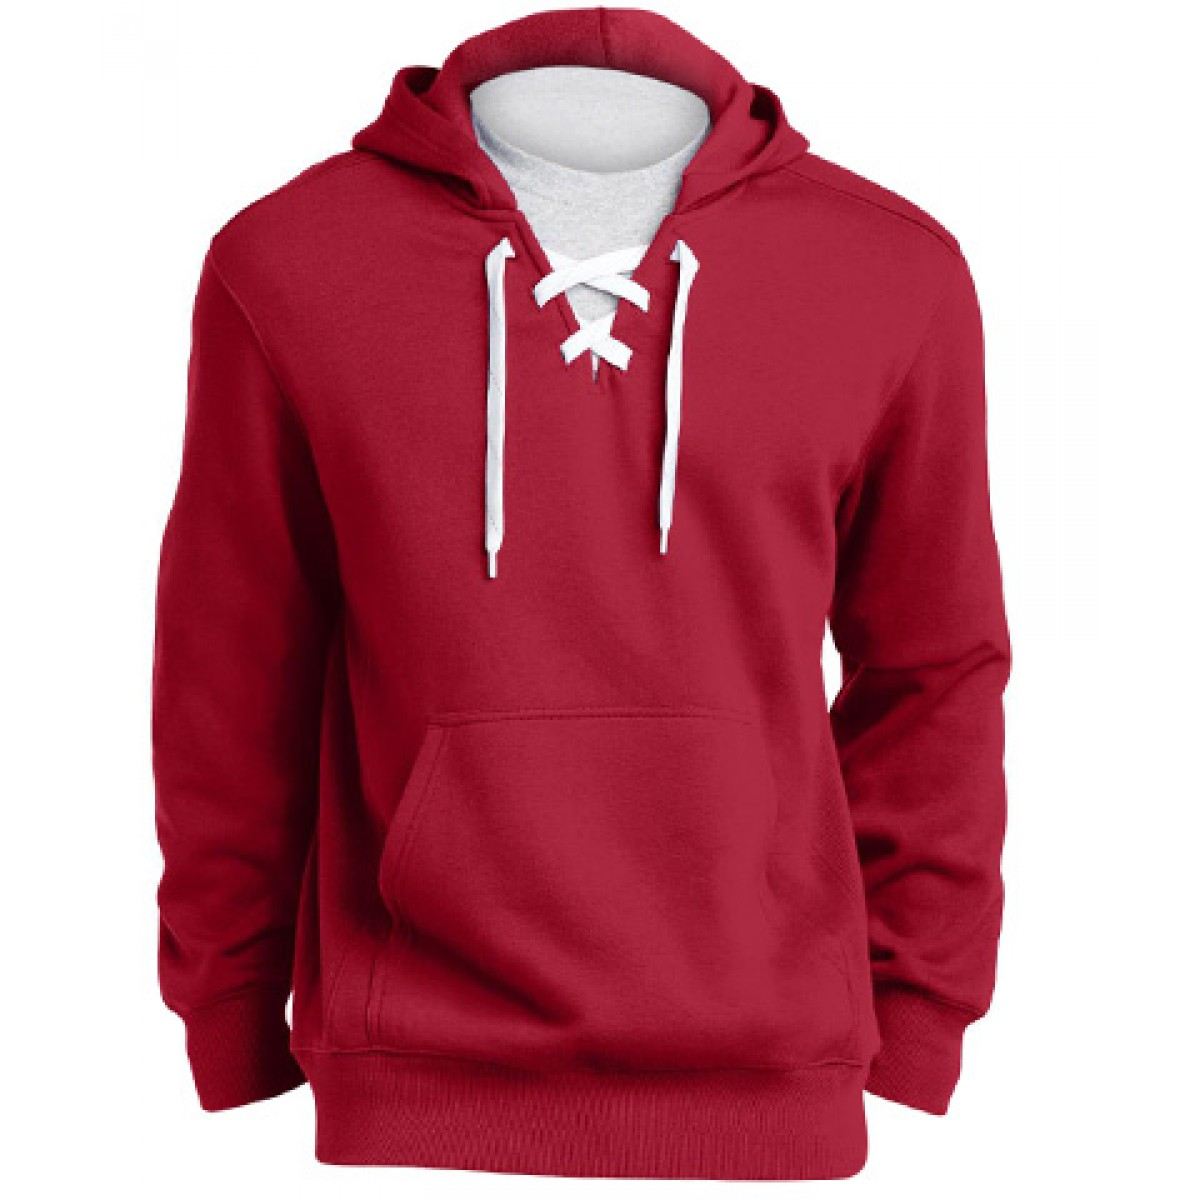 Lace Up Pullover Hooded Sweatshirt-Red-XL